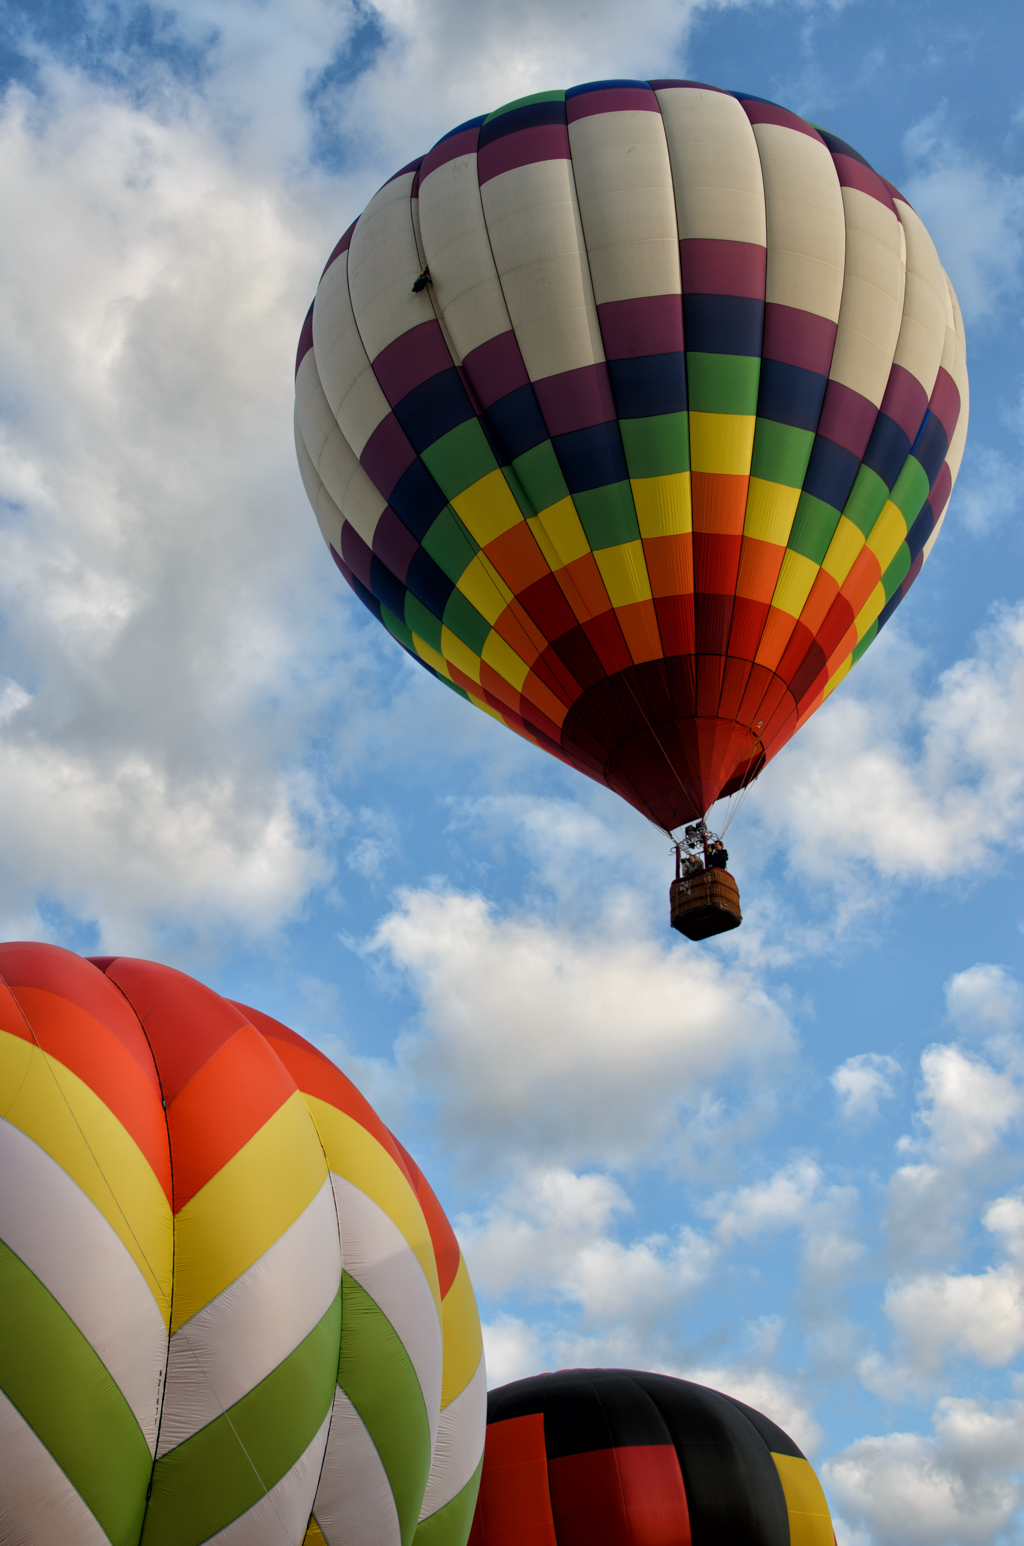 32nd annual New Jersey Festival of Ballooning, wpid14586 NIKON D5100 20140725 1007 Edit